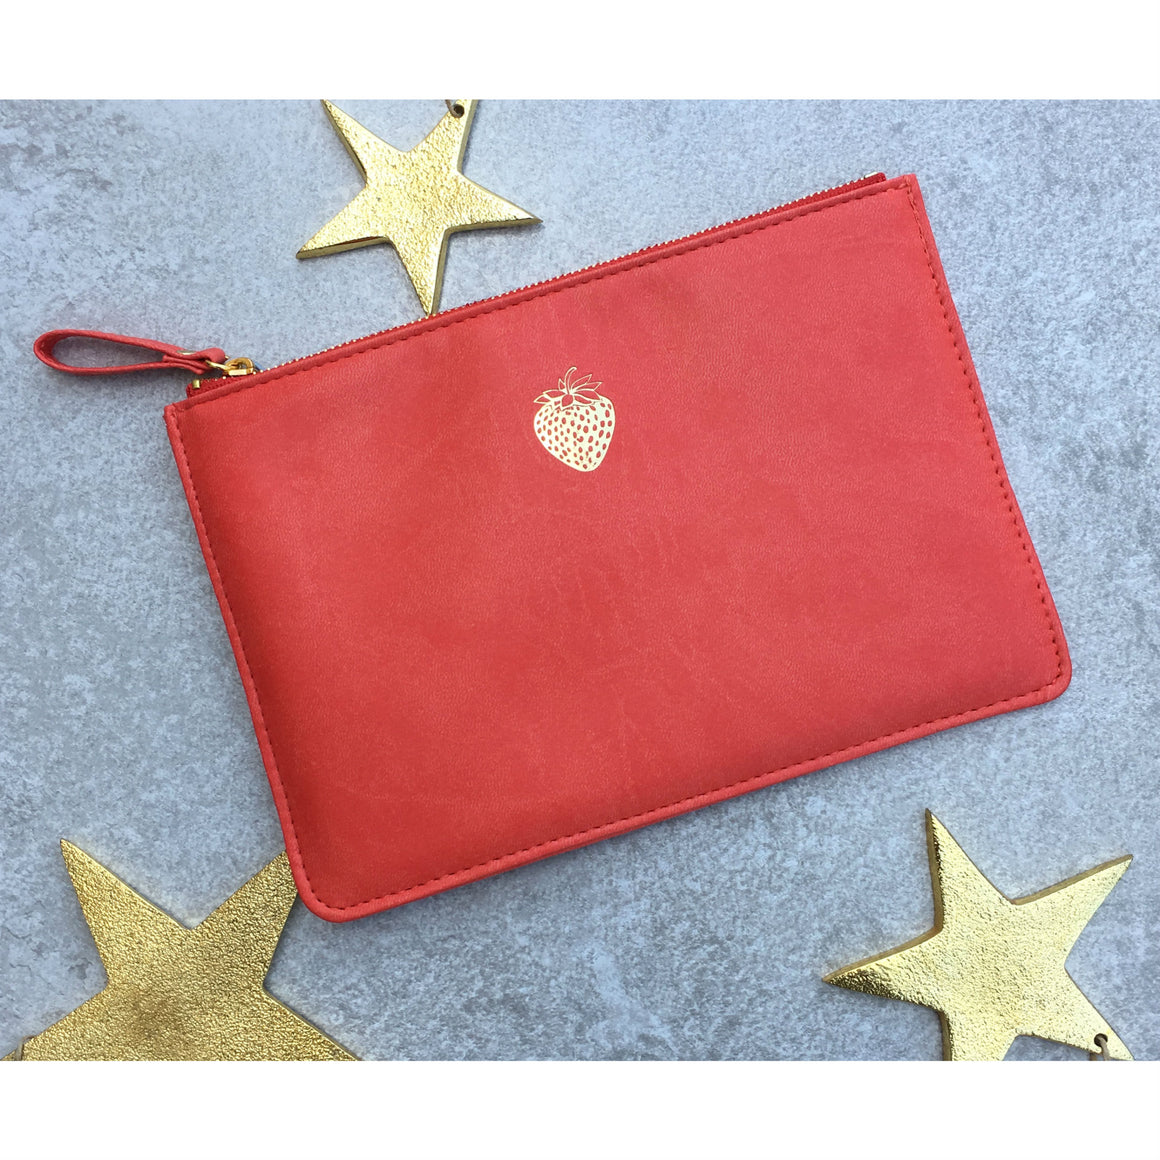 Sky + Miller Strawberry Faux Leather Pouch - The Love Trees